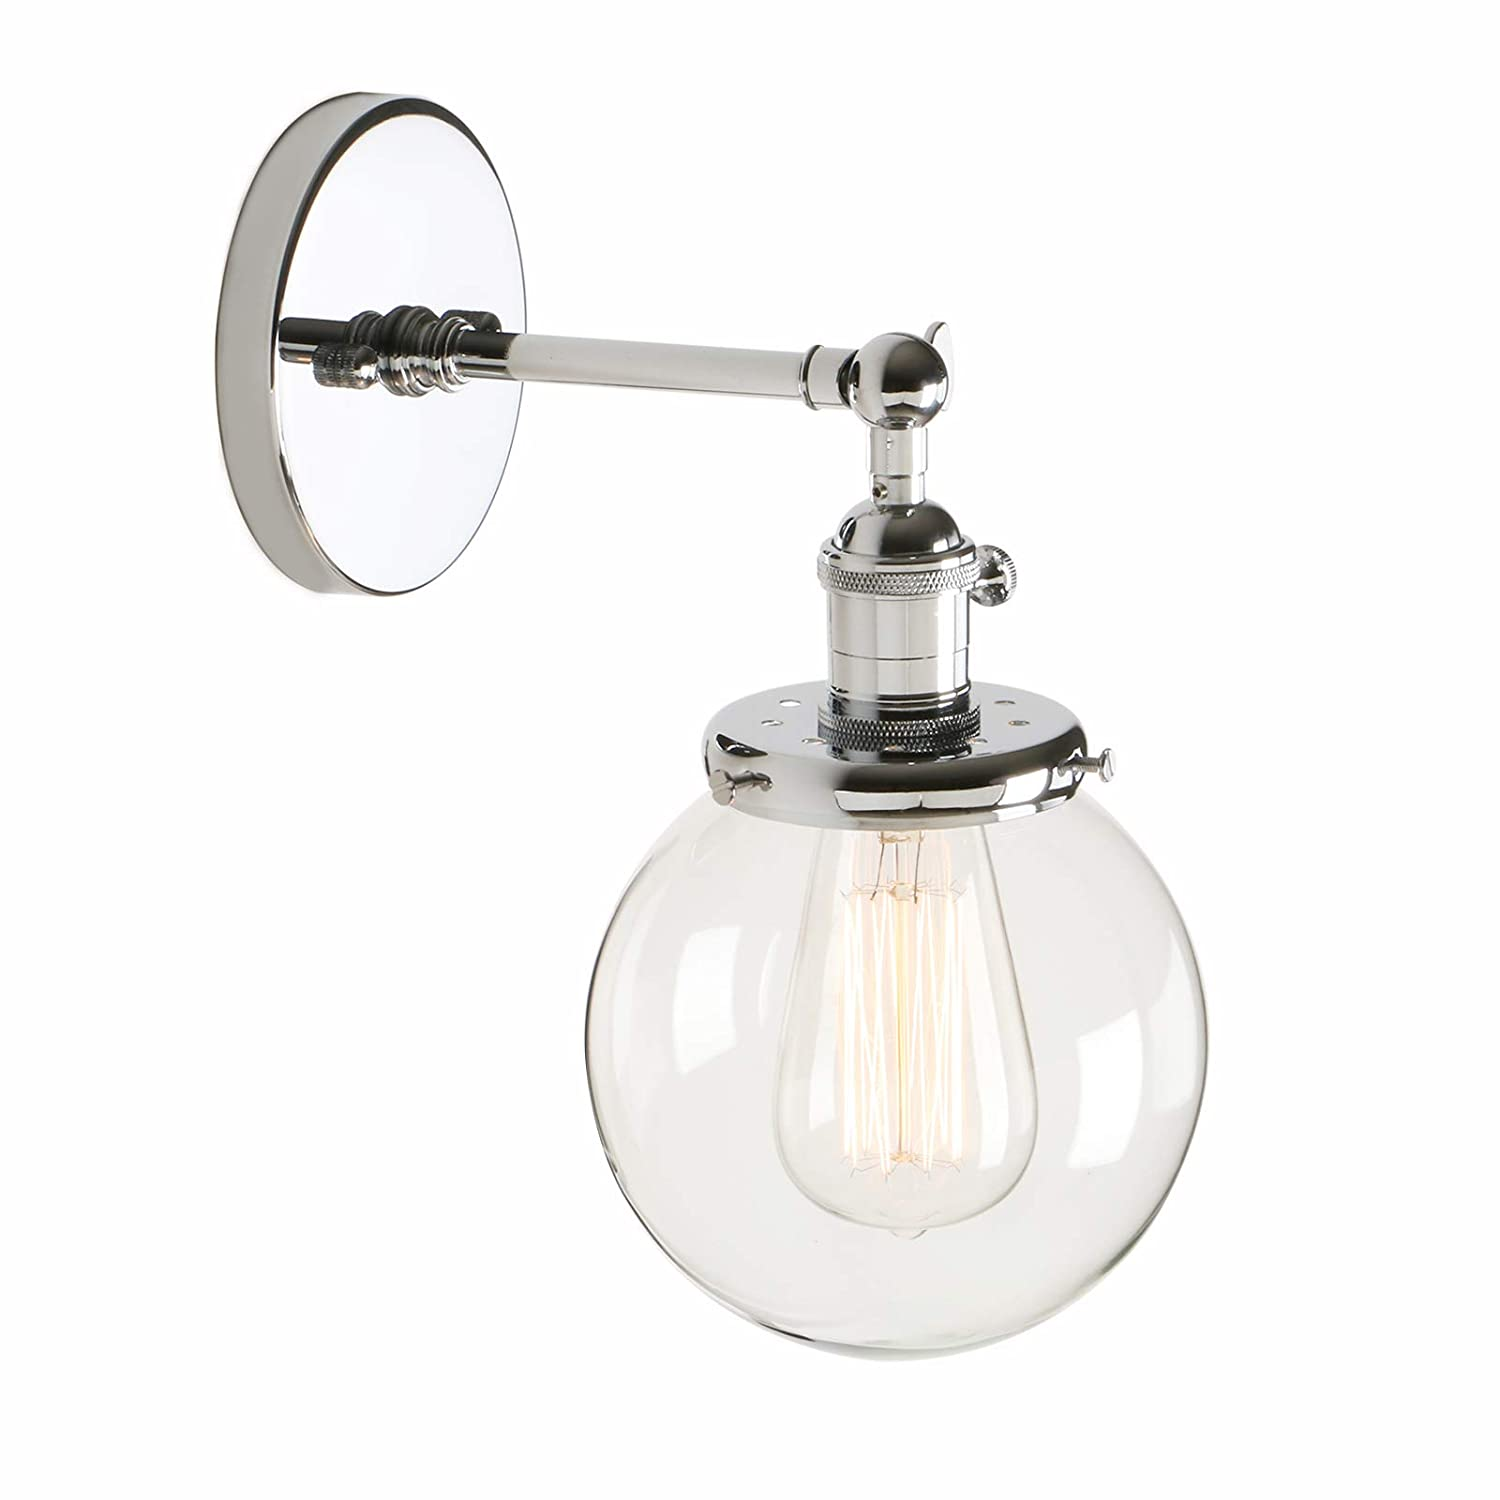 Pathson industrial vintage loft bar kitchen switch wall lights fittings corridor sconce light lamp fixture with 15cm globe clear glass lampshade chrome